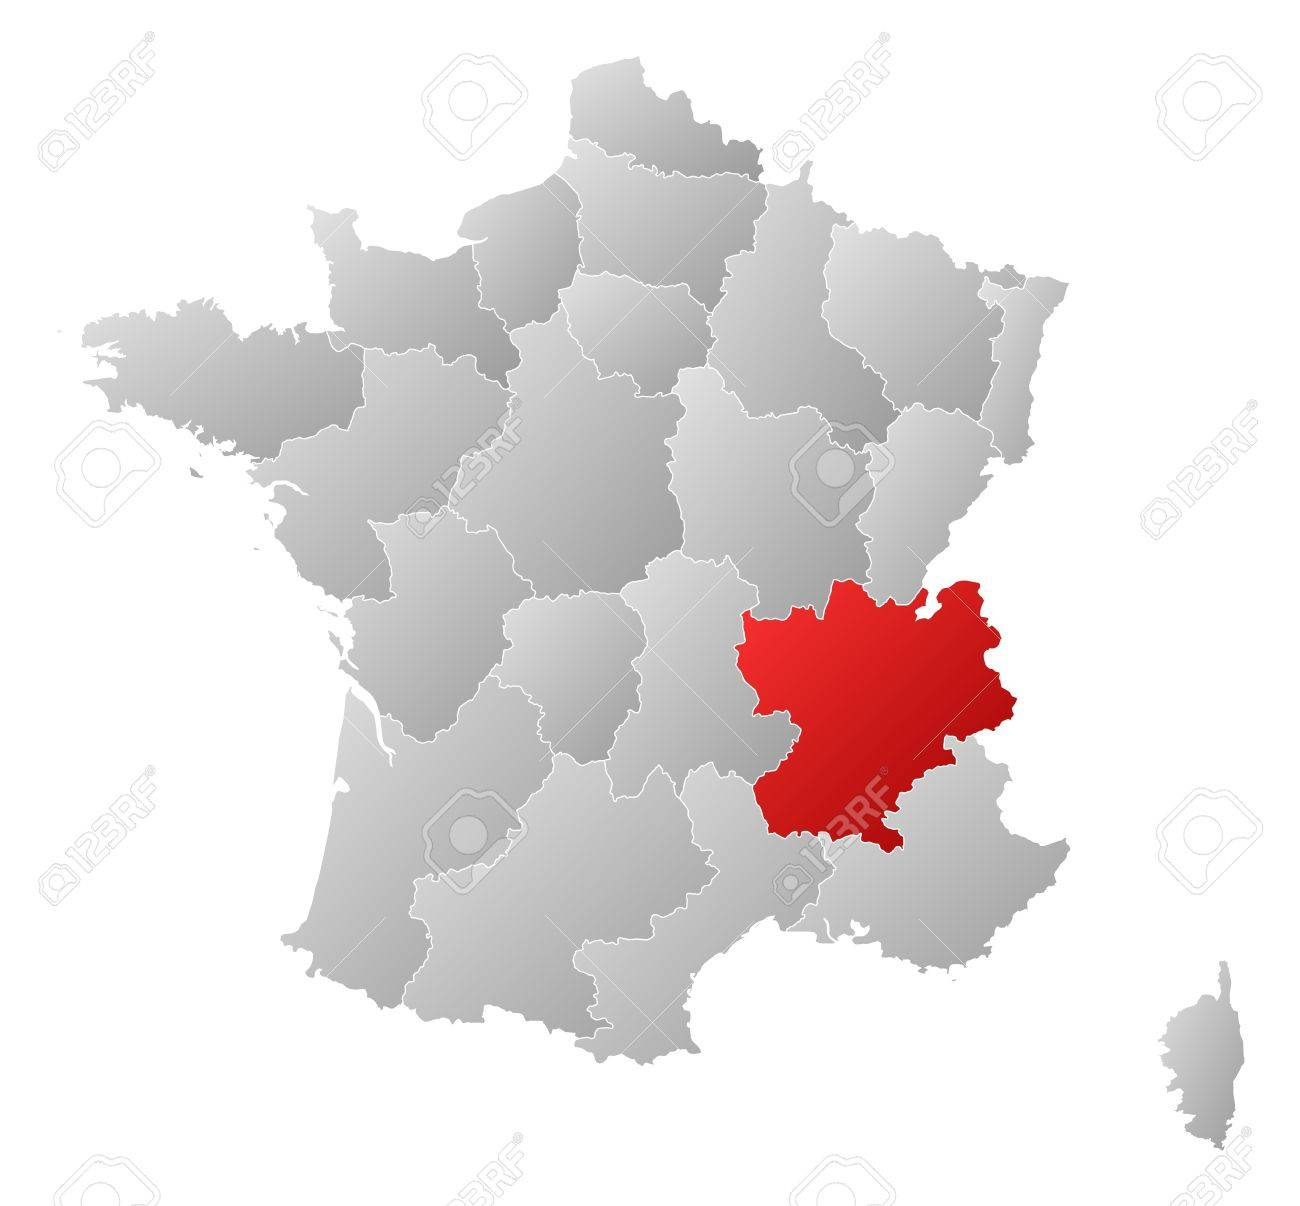 Political Map Of Southeast Asia%0A political map of france political map of france with the several regions  where rhone alpes